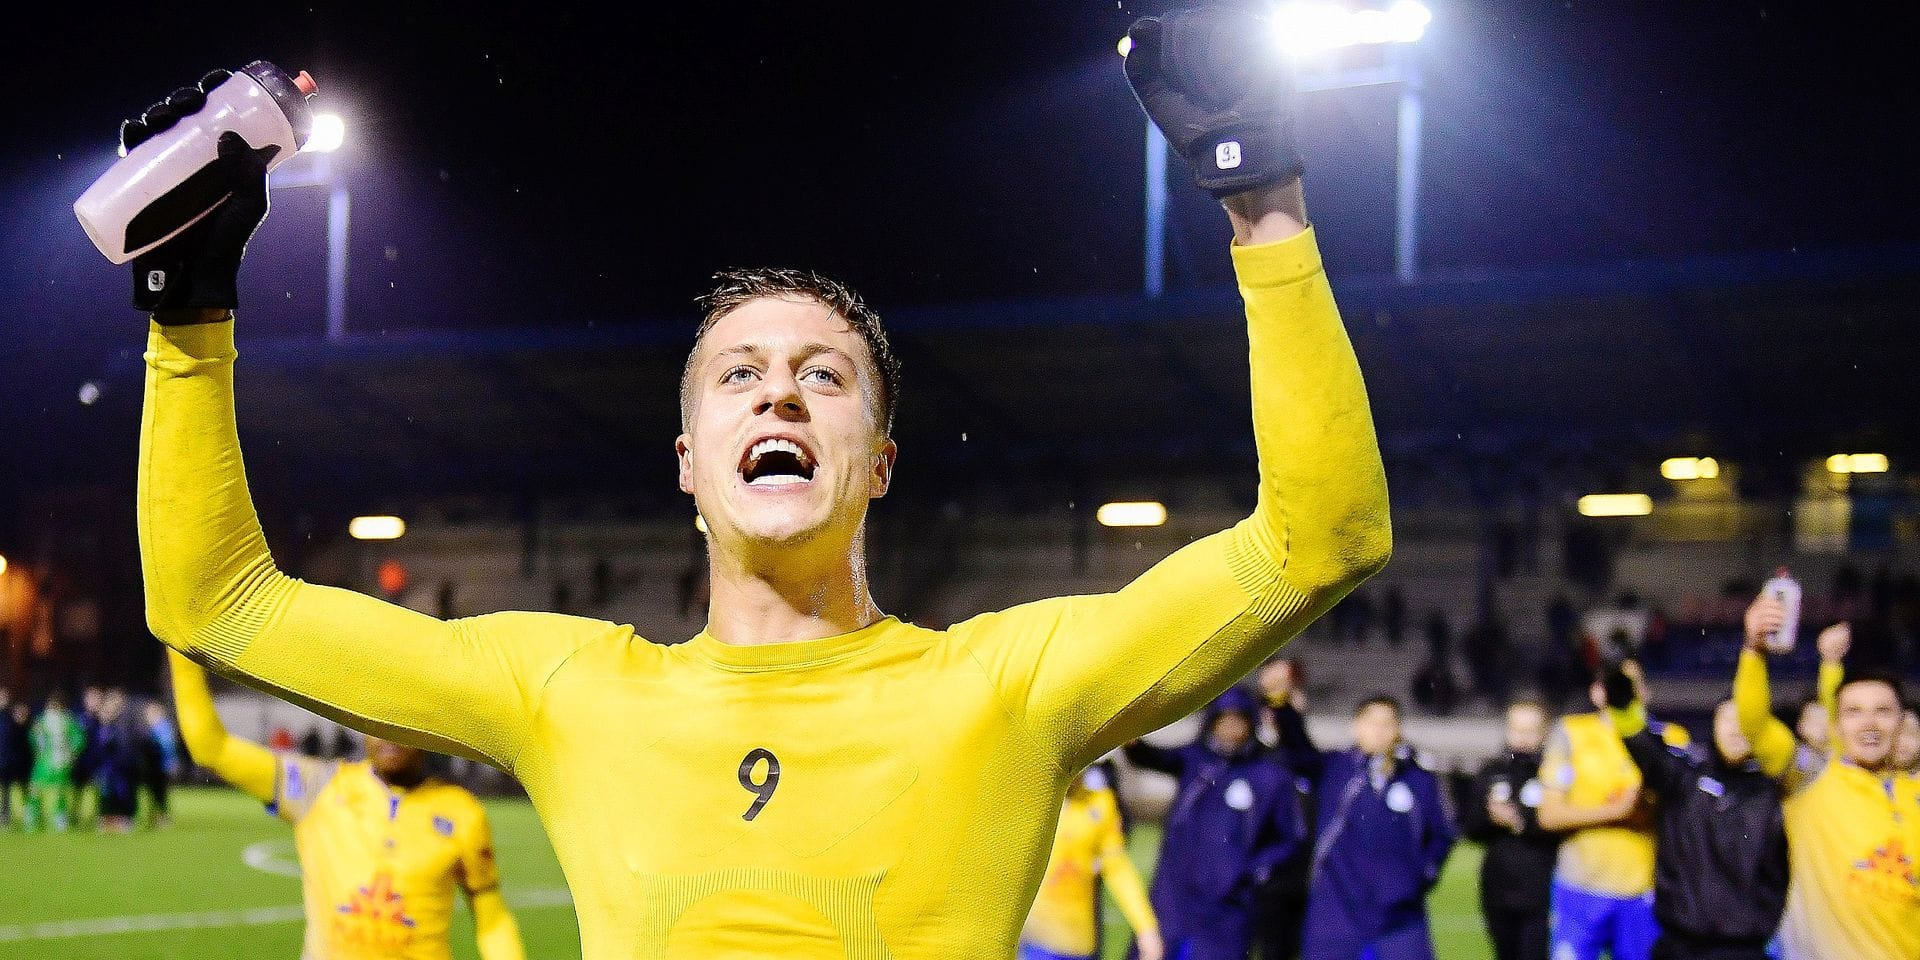 Union's Roman Ferber celebrates after winning a soccer game between Royale Union Saint-Gilloise and Lommel SK, Wednesday 06 February 2019 in Brussels, on the 24th day of the 'Proximus League' 1B division of the Belgian soccer championship. The gale was plan on 2nd February but was postponed beacuse of the snow on the field. BELGA PHOTO LAURIE DIEFFEMBACQ